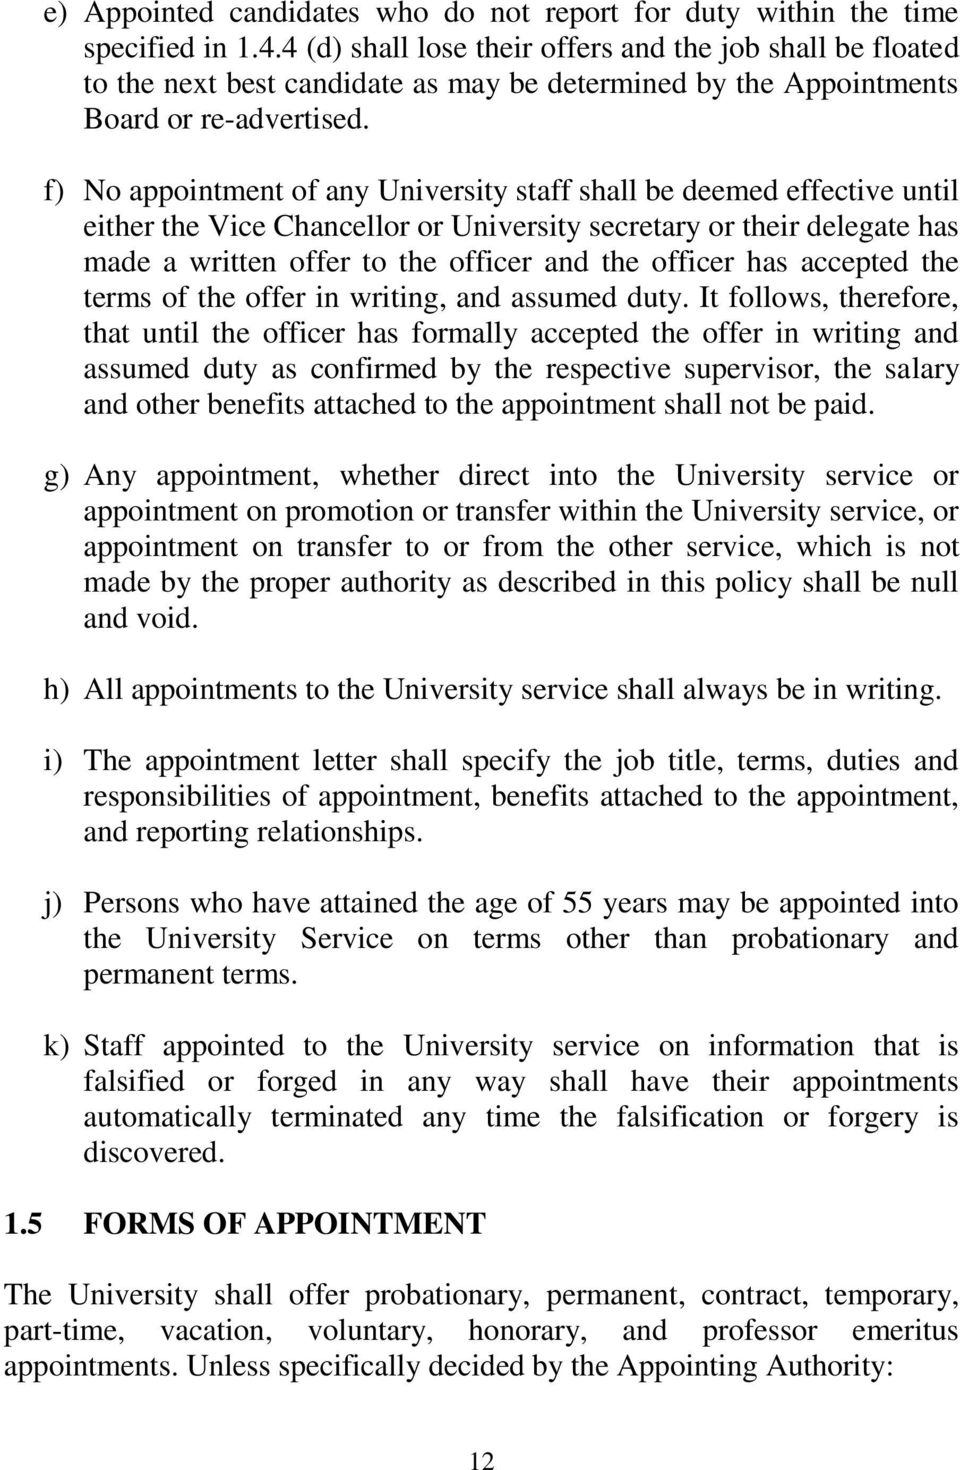 f) No appointment of any University staff shall be deemed effective until either the Vice Chancellor or University secretary or their delegate has made a written offer to the officer and the officer